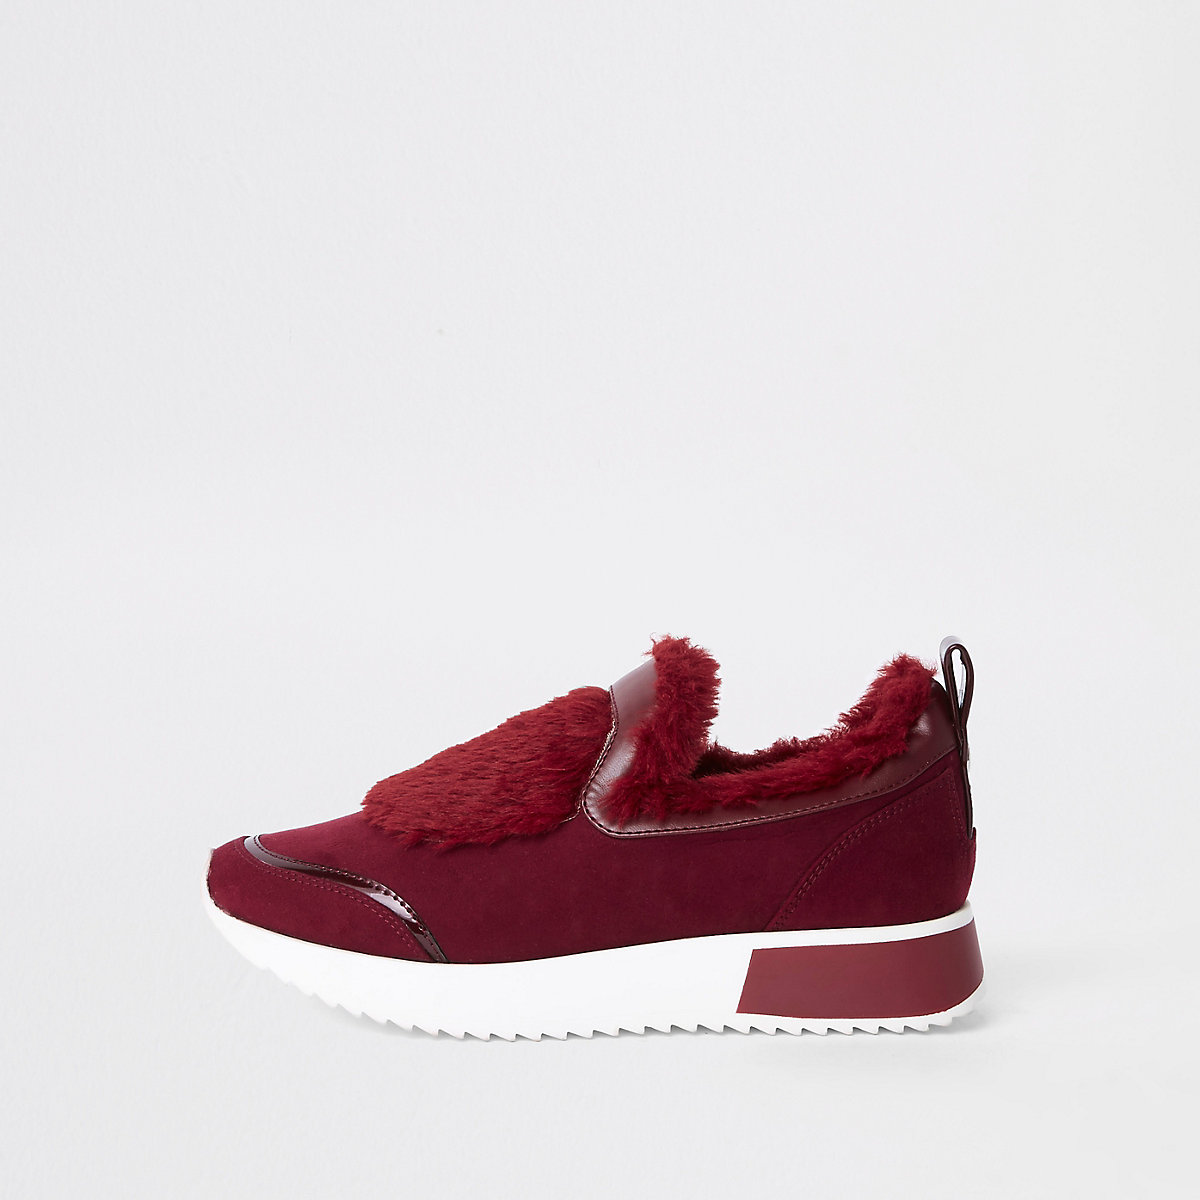 Dark red faux fur slip-on runner sneakers